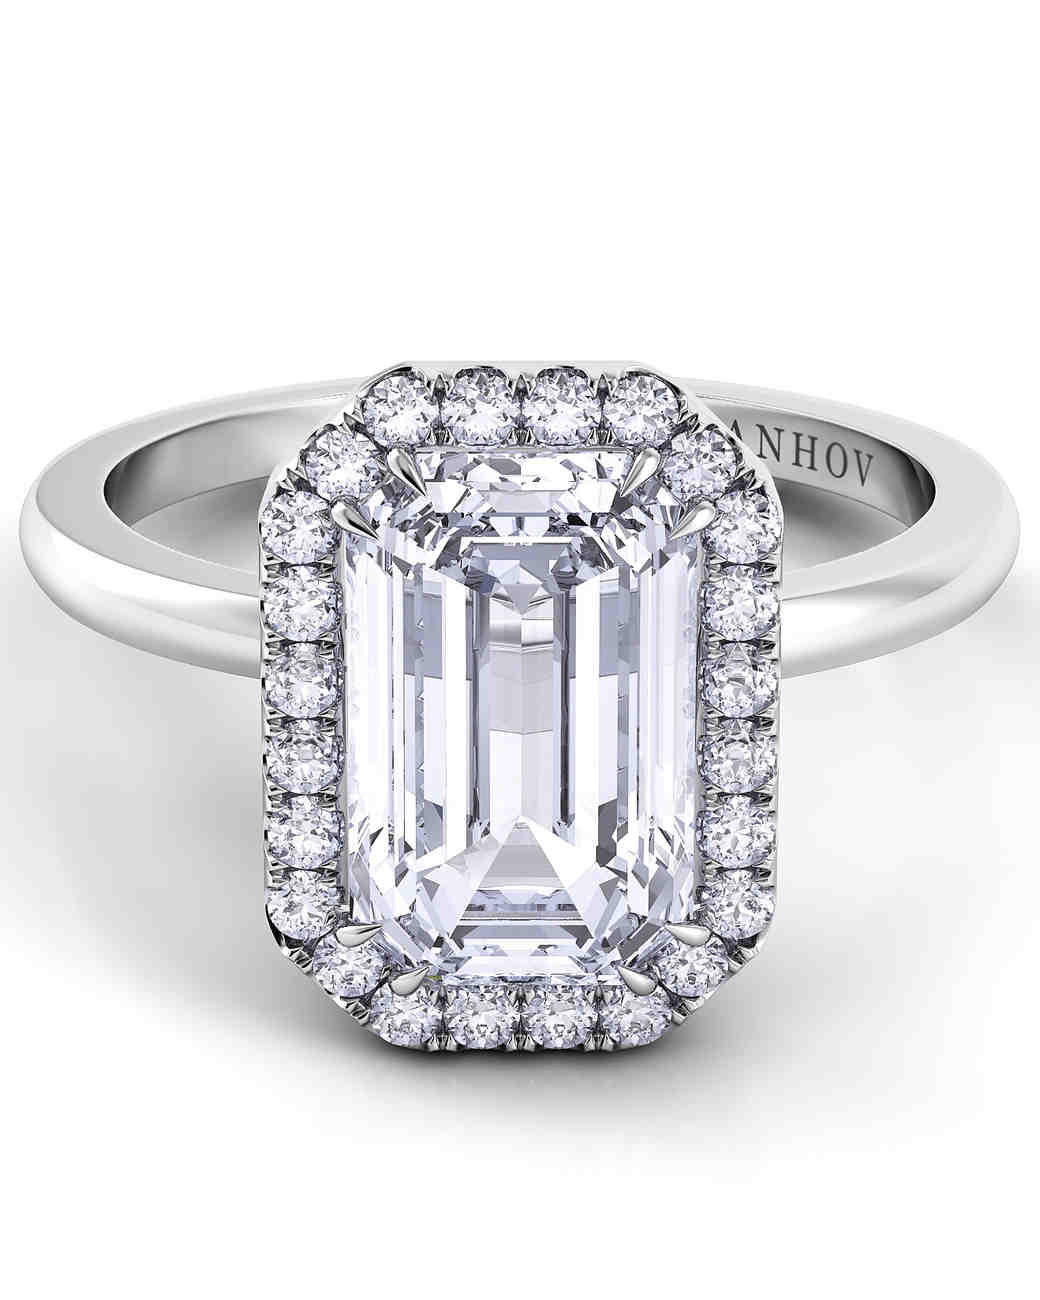 Danhov Emerald-Cut Engagement Ring